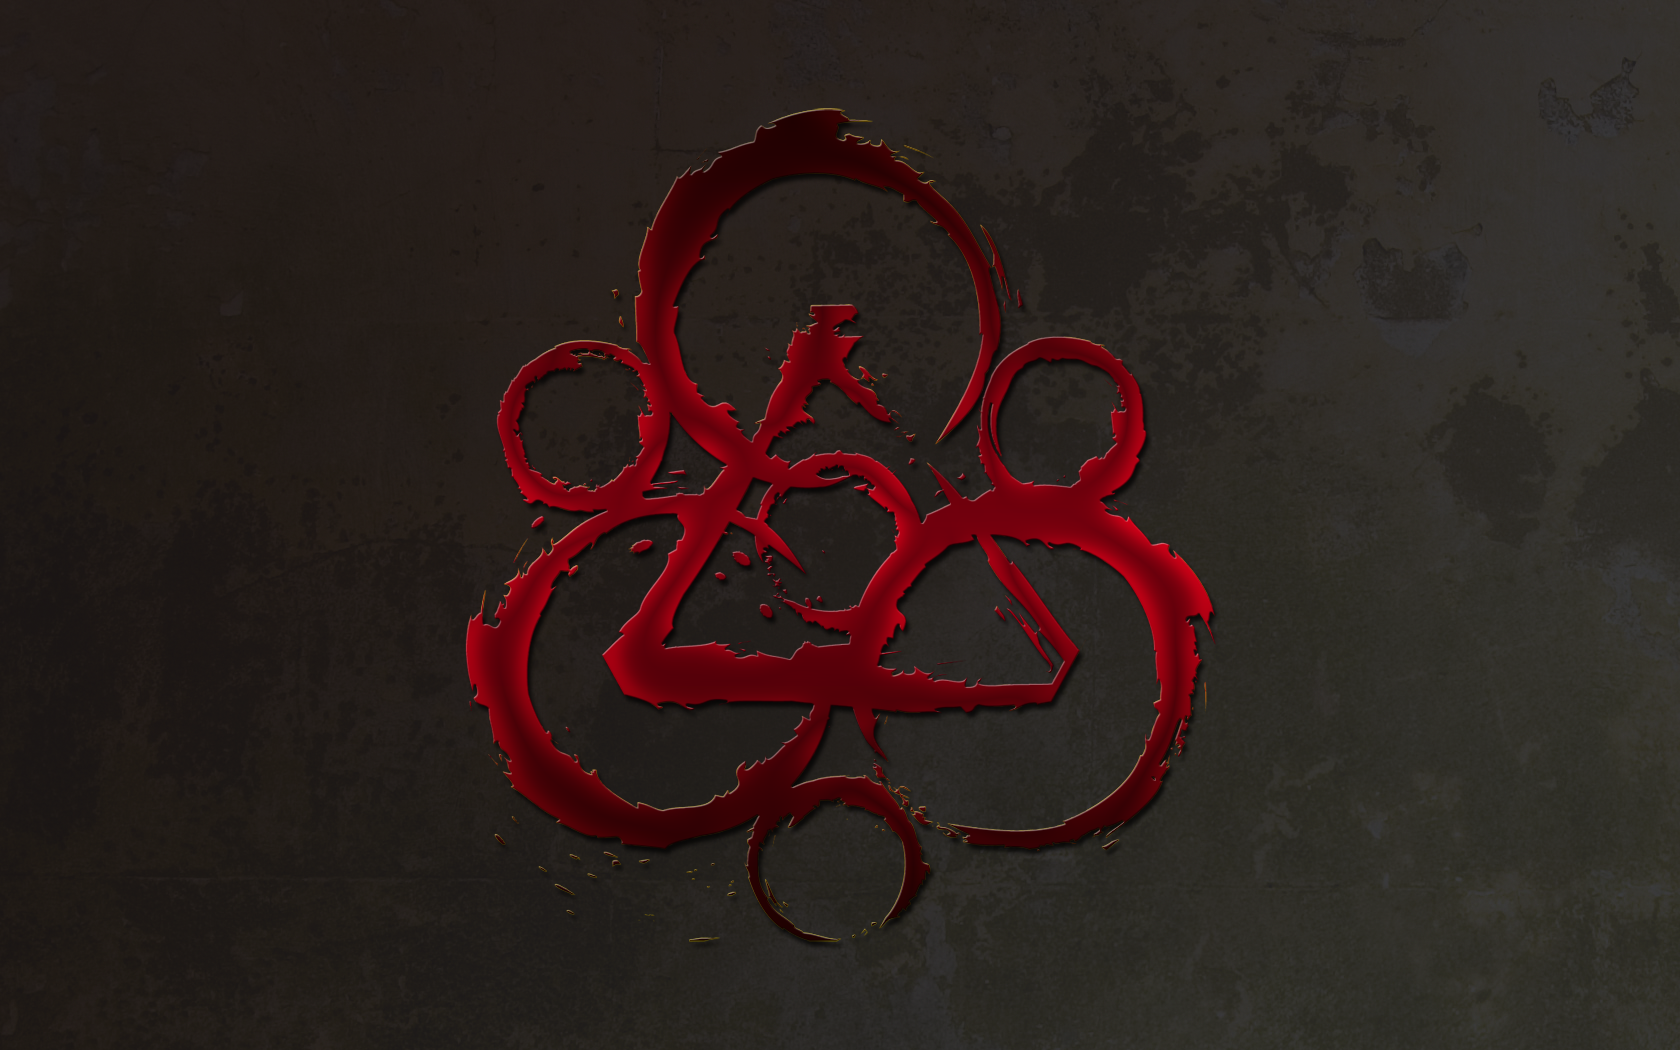 Another Minimalist Coheed and Cambria Wallpaper